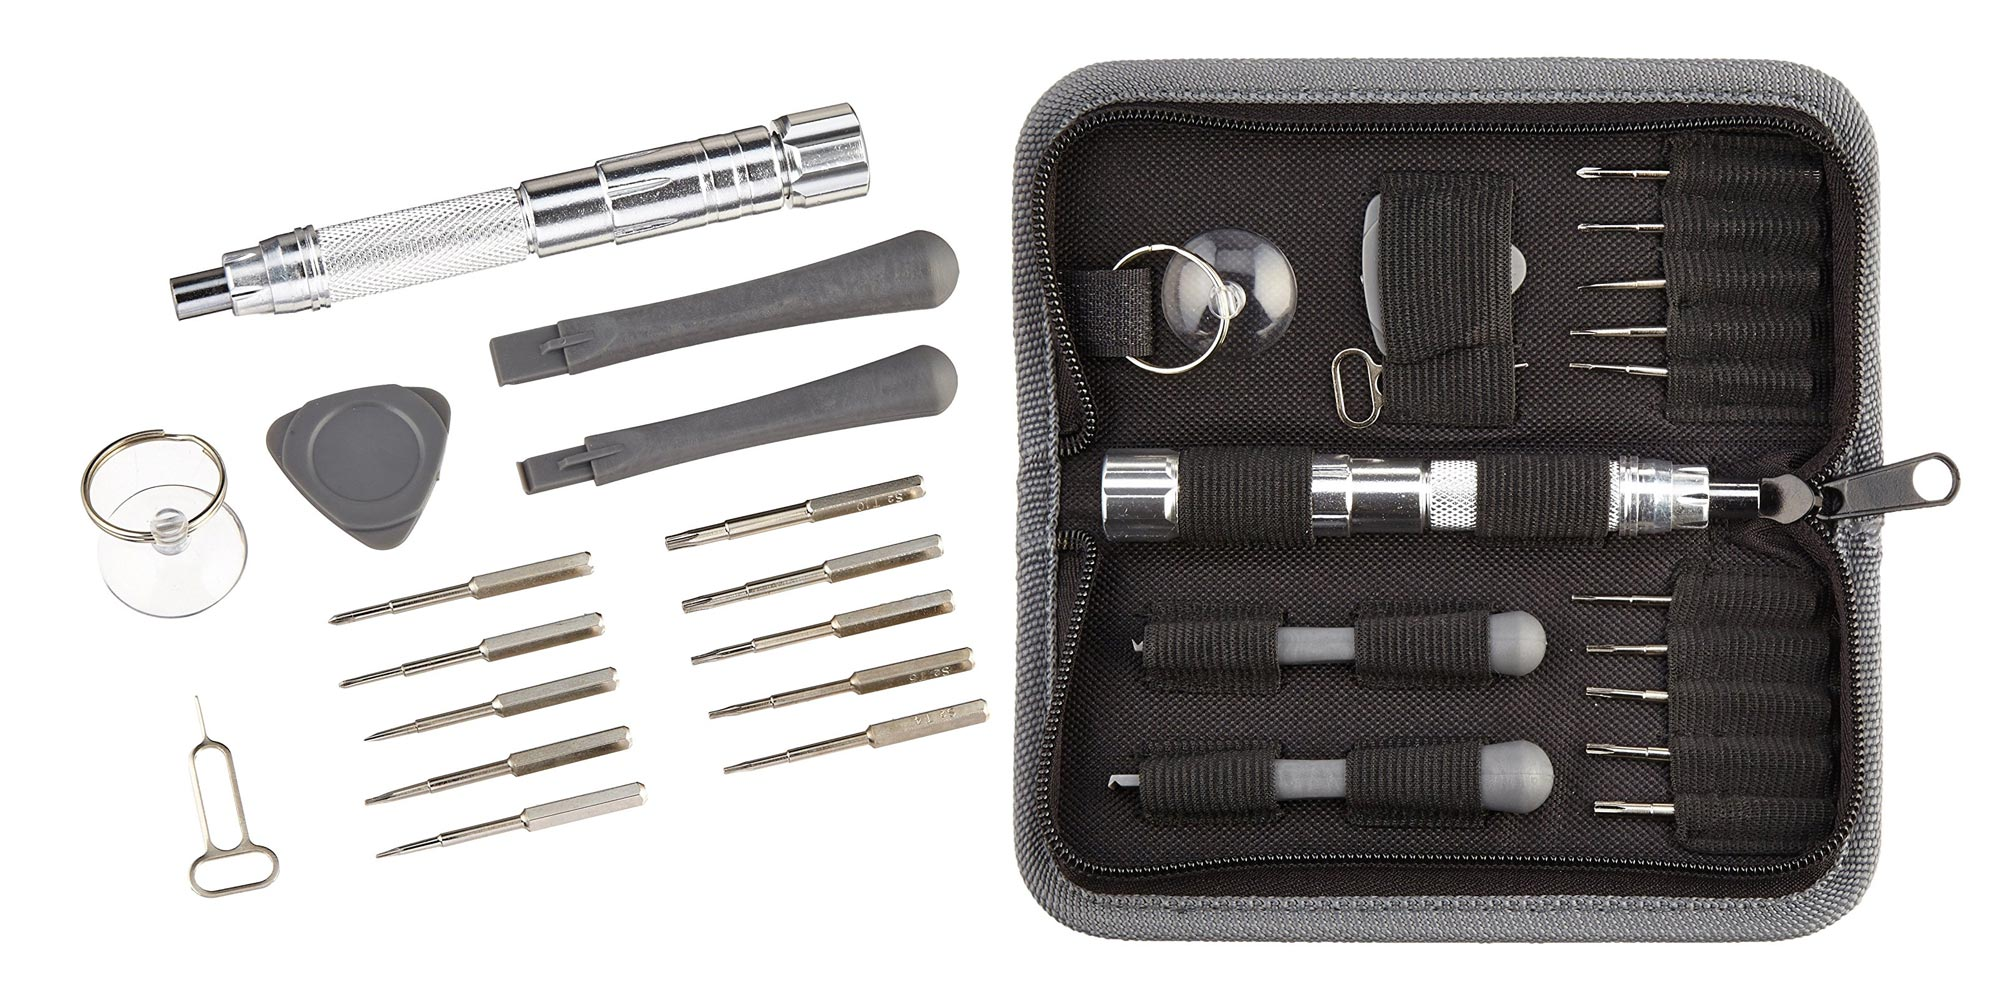 Repair your tech at home w/ Amazon's $7.50 Smartphone Tool Kit